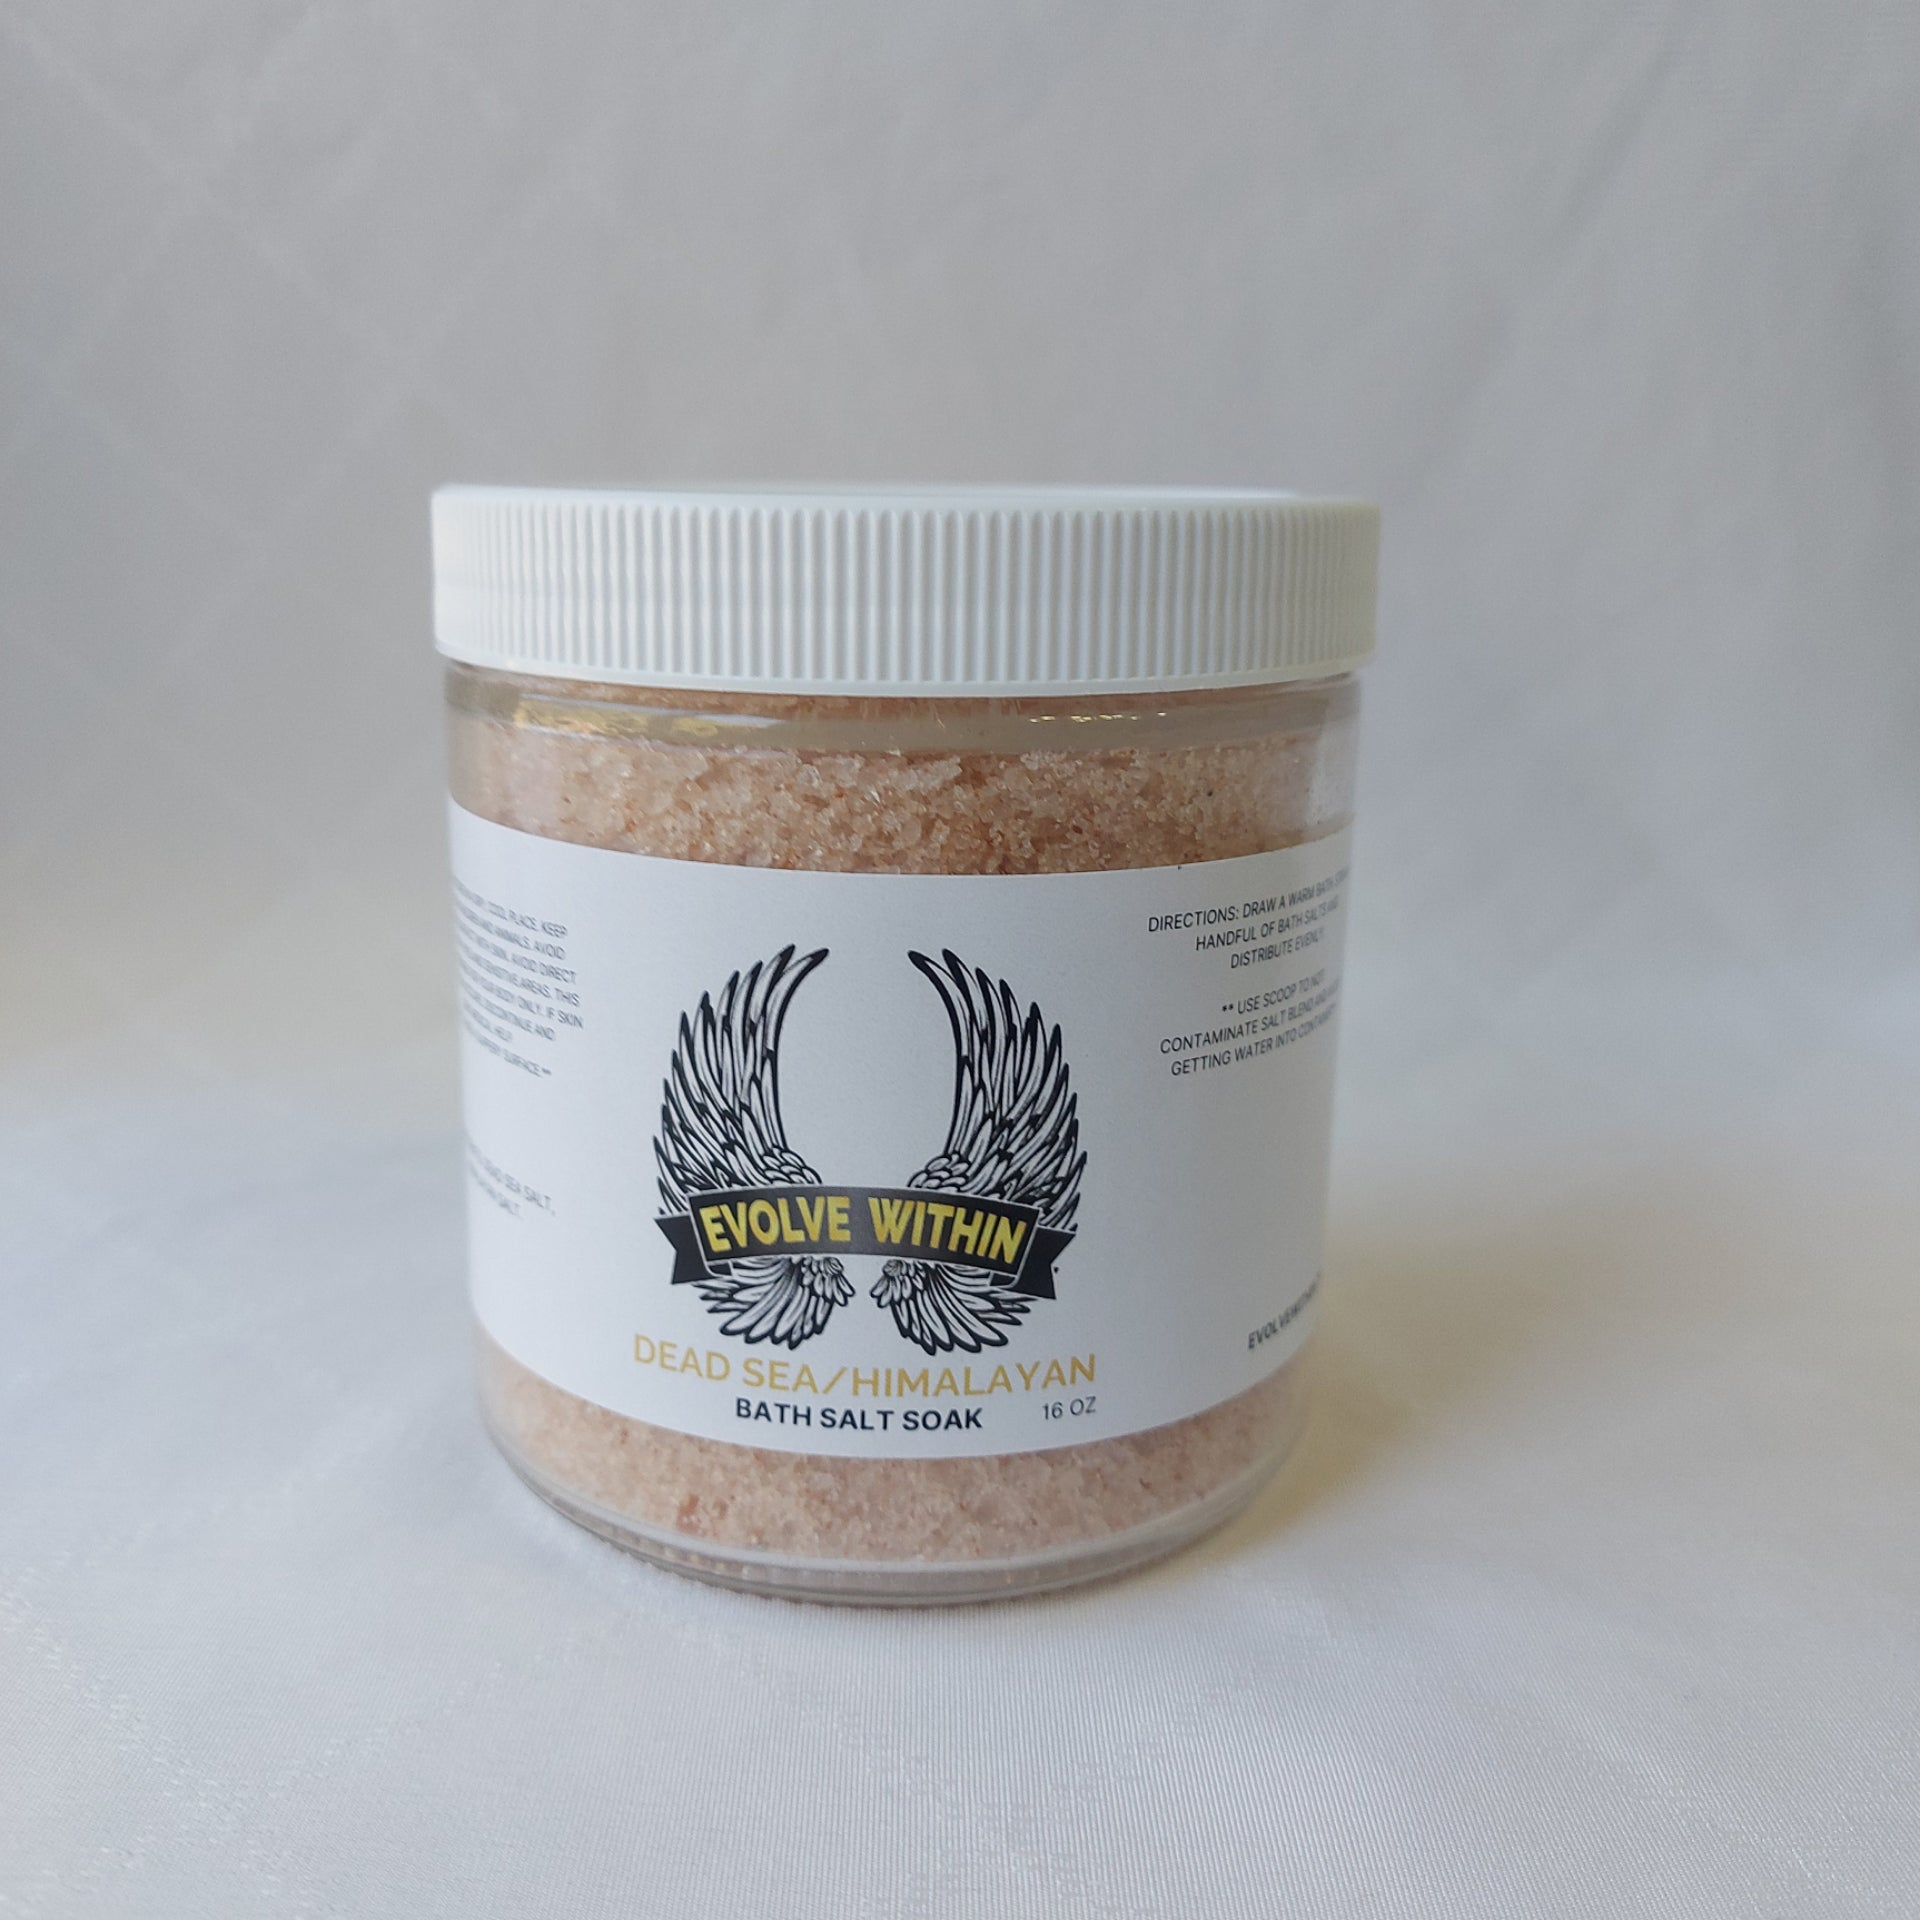 Dead Sea/Himalayan Bath Salt Soak